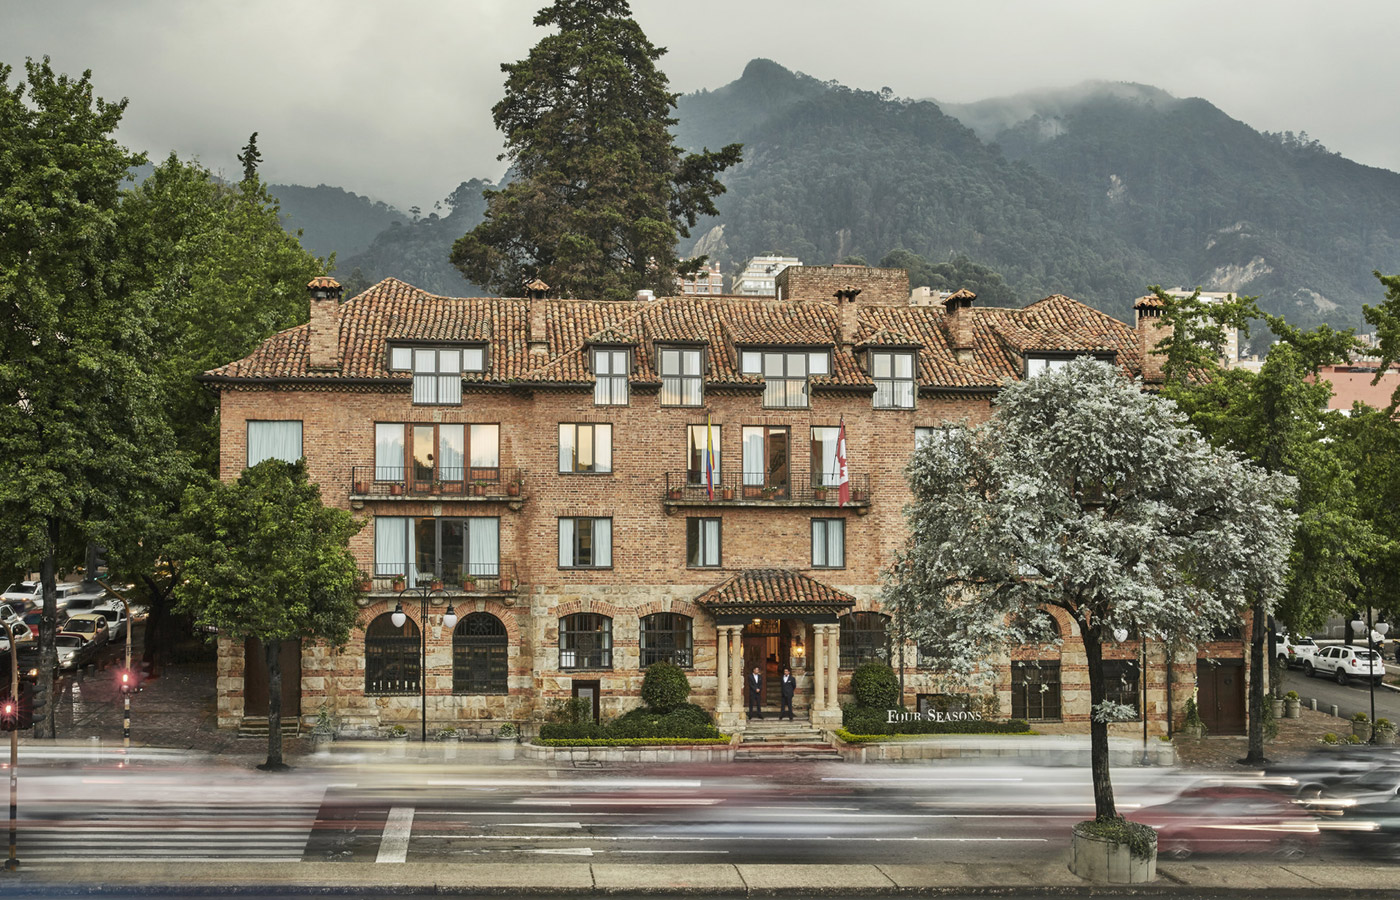 The grand facade of the Four Seasons Casa Medina, Bogota, Colombia